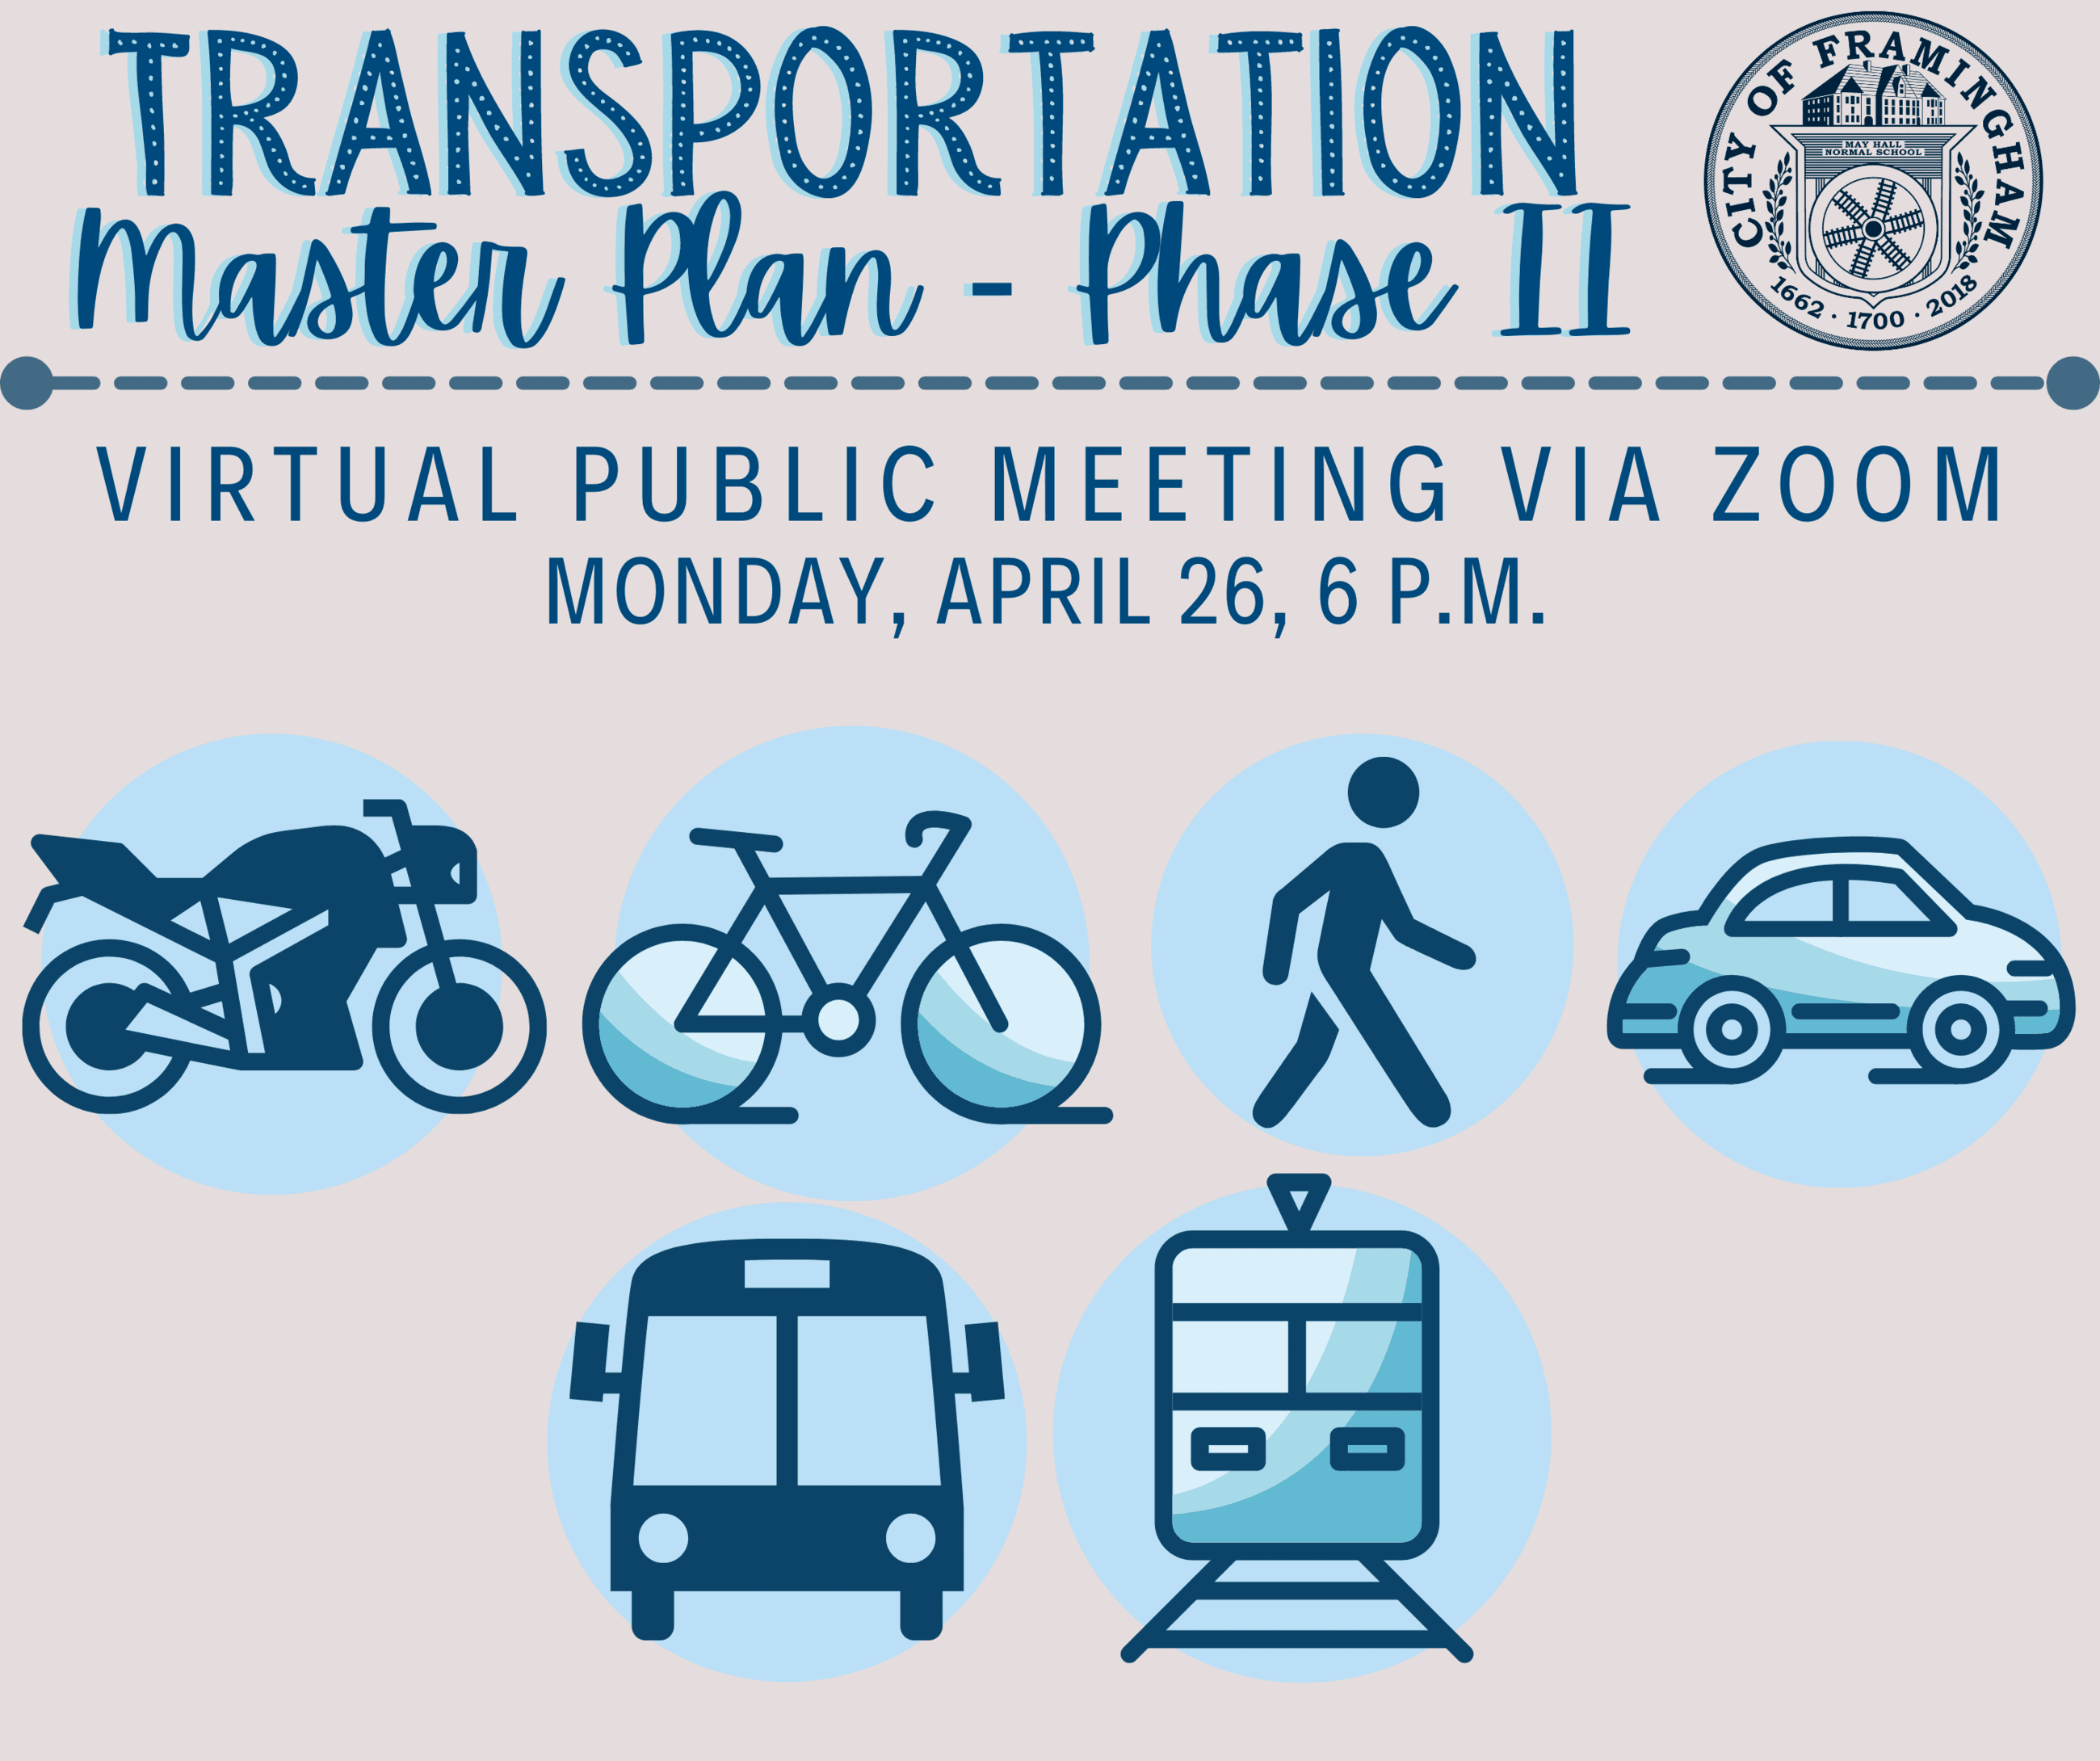 Transportation Master Plan